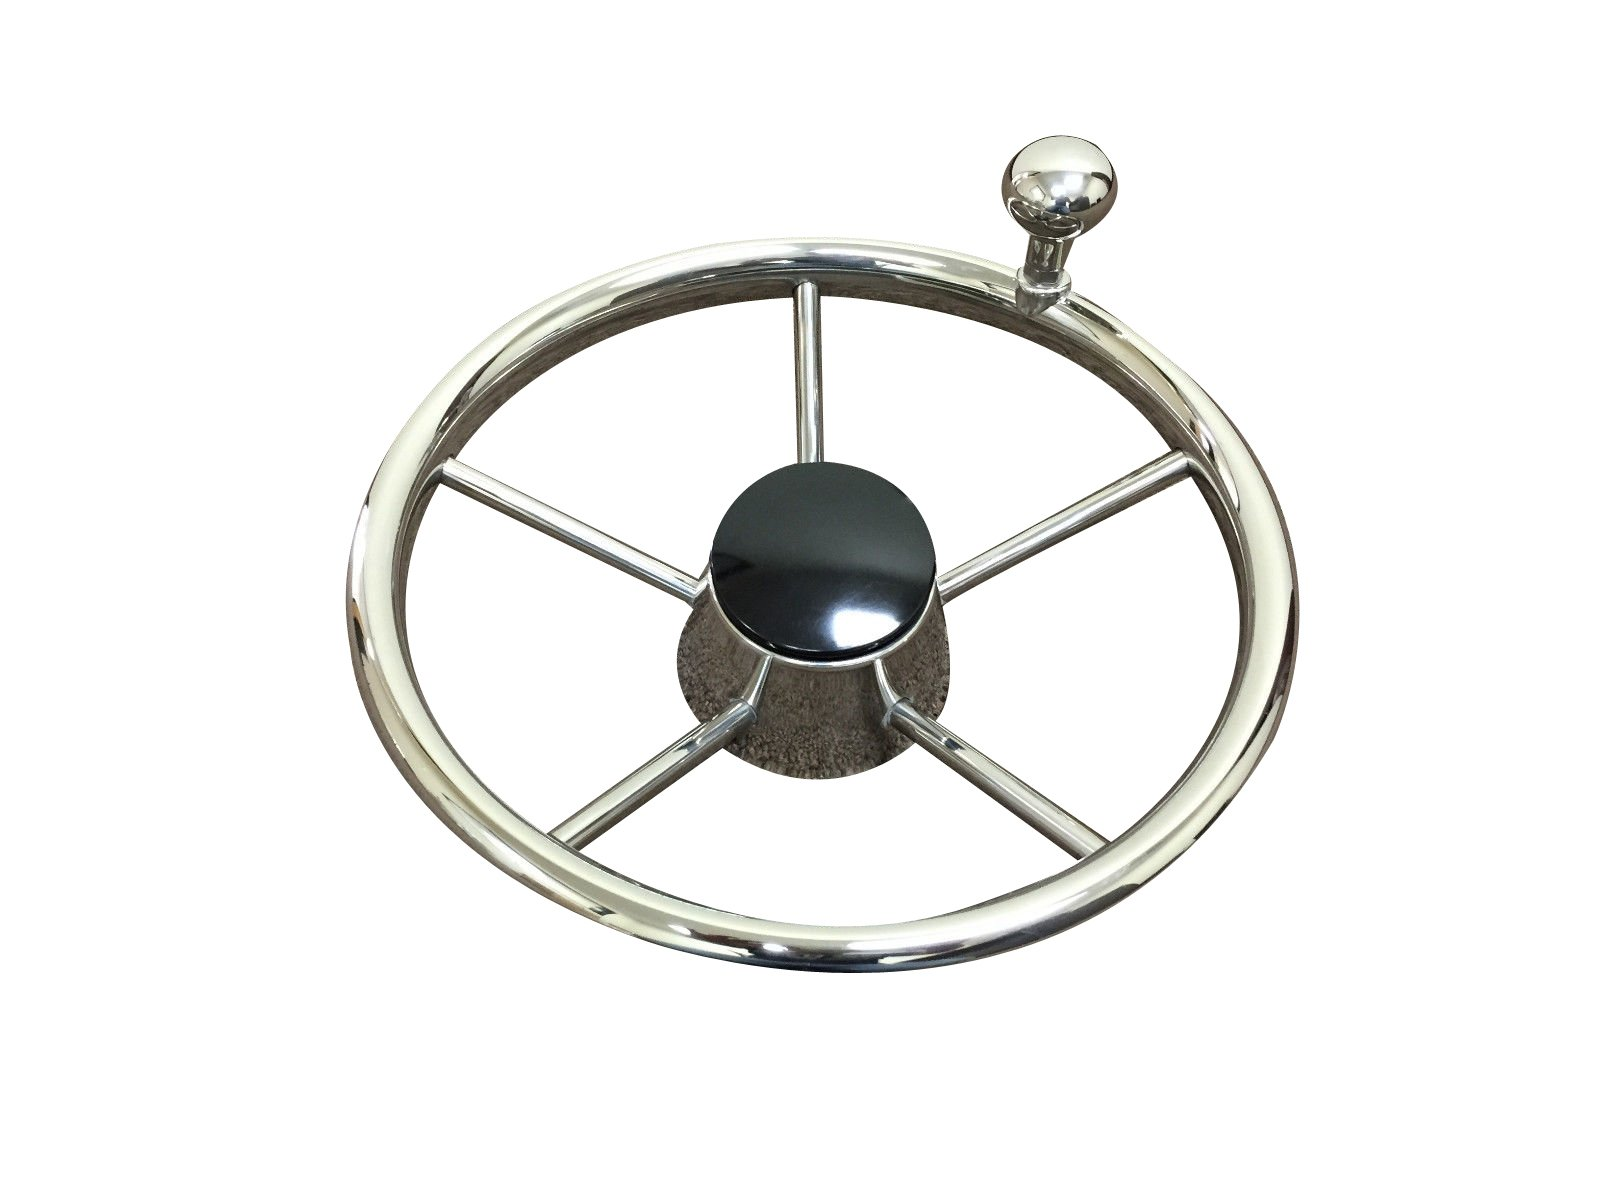 Pactrade Marine 5 Spoke Stainless Steel Steering Wheel with Turning Knob, 11'' L